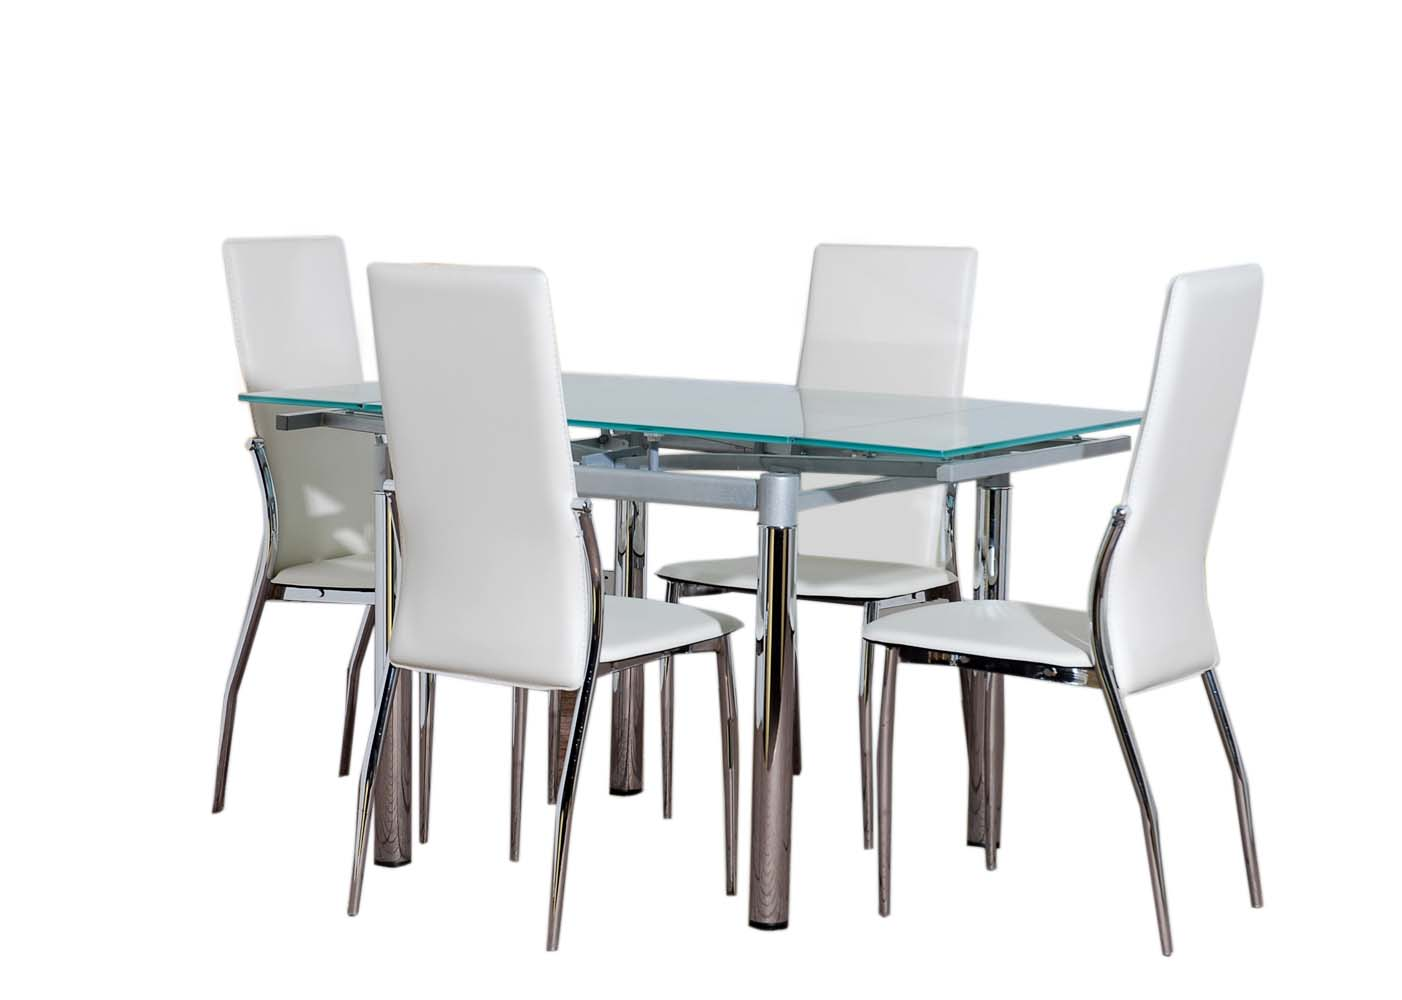 Glass dining table furniture and 4 cream chairs set ebay for Dinner table set for 4